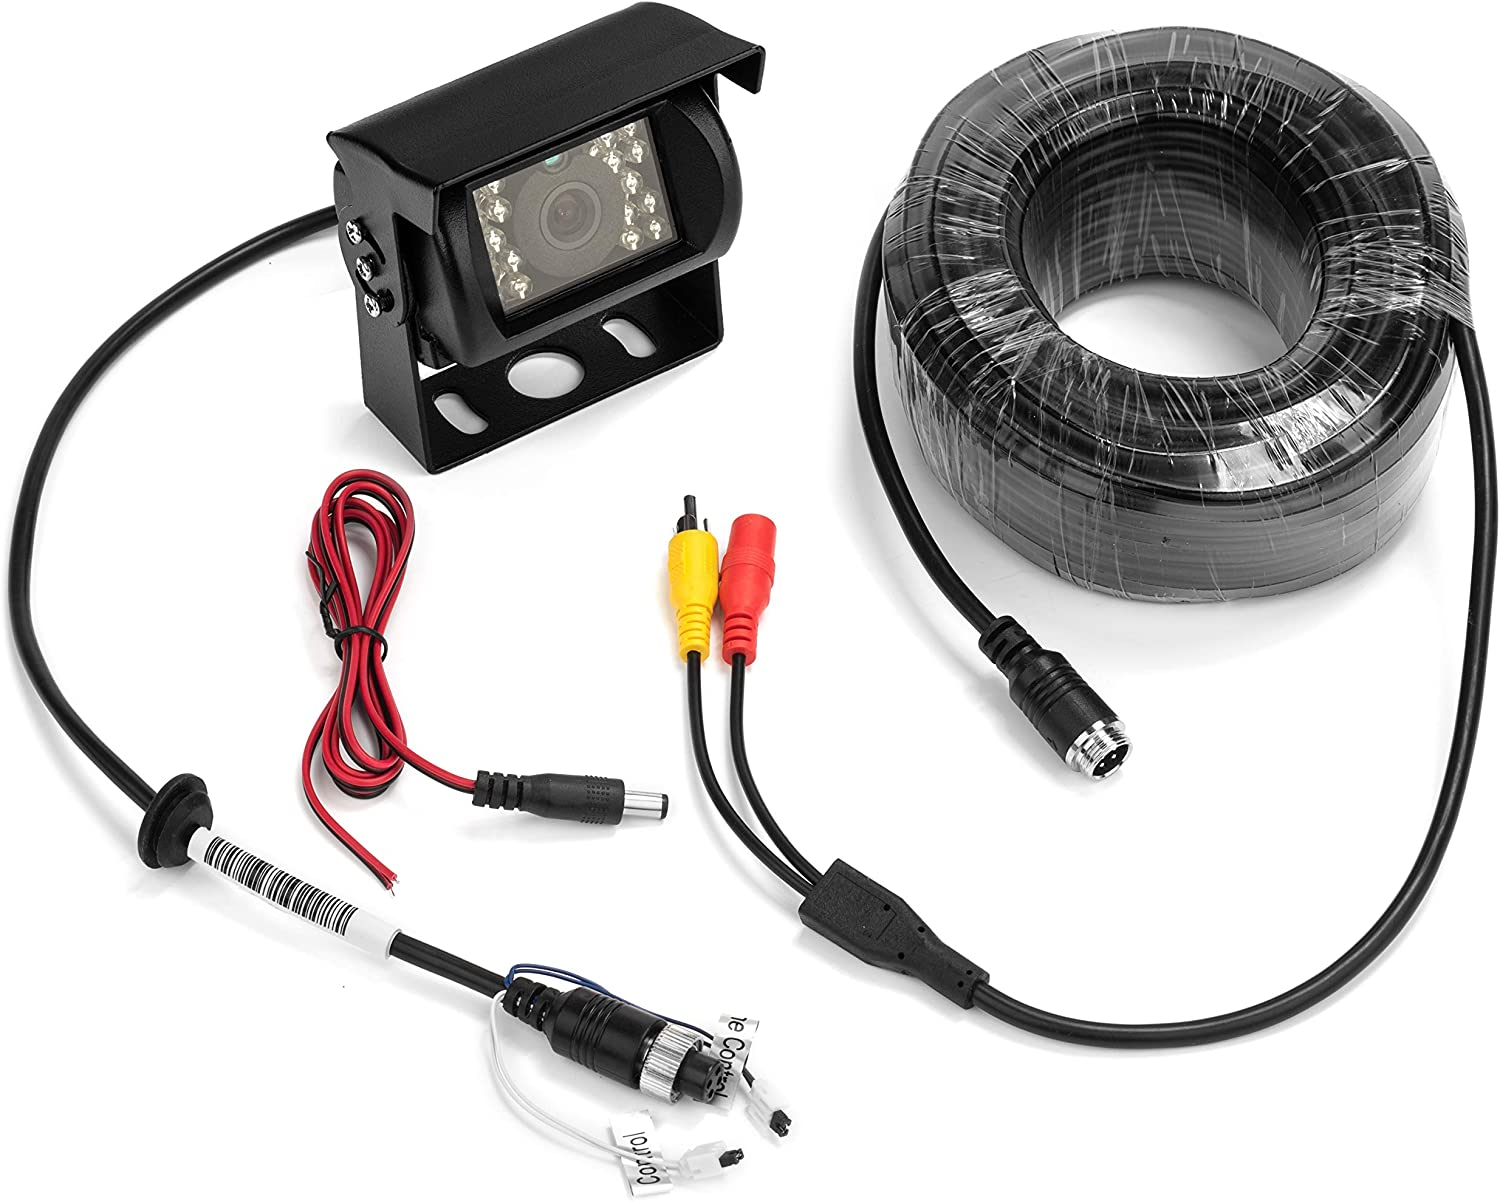 includes 65 ft. extension cable BOYO VTB301C Heavy-Duty Universal Mount Backup Camera with Night Vision